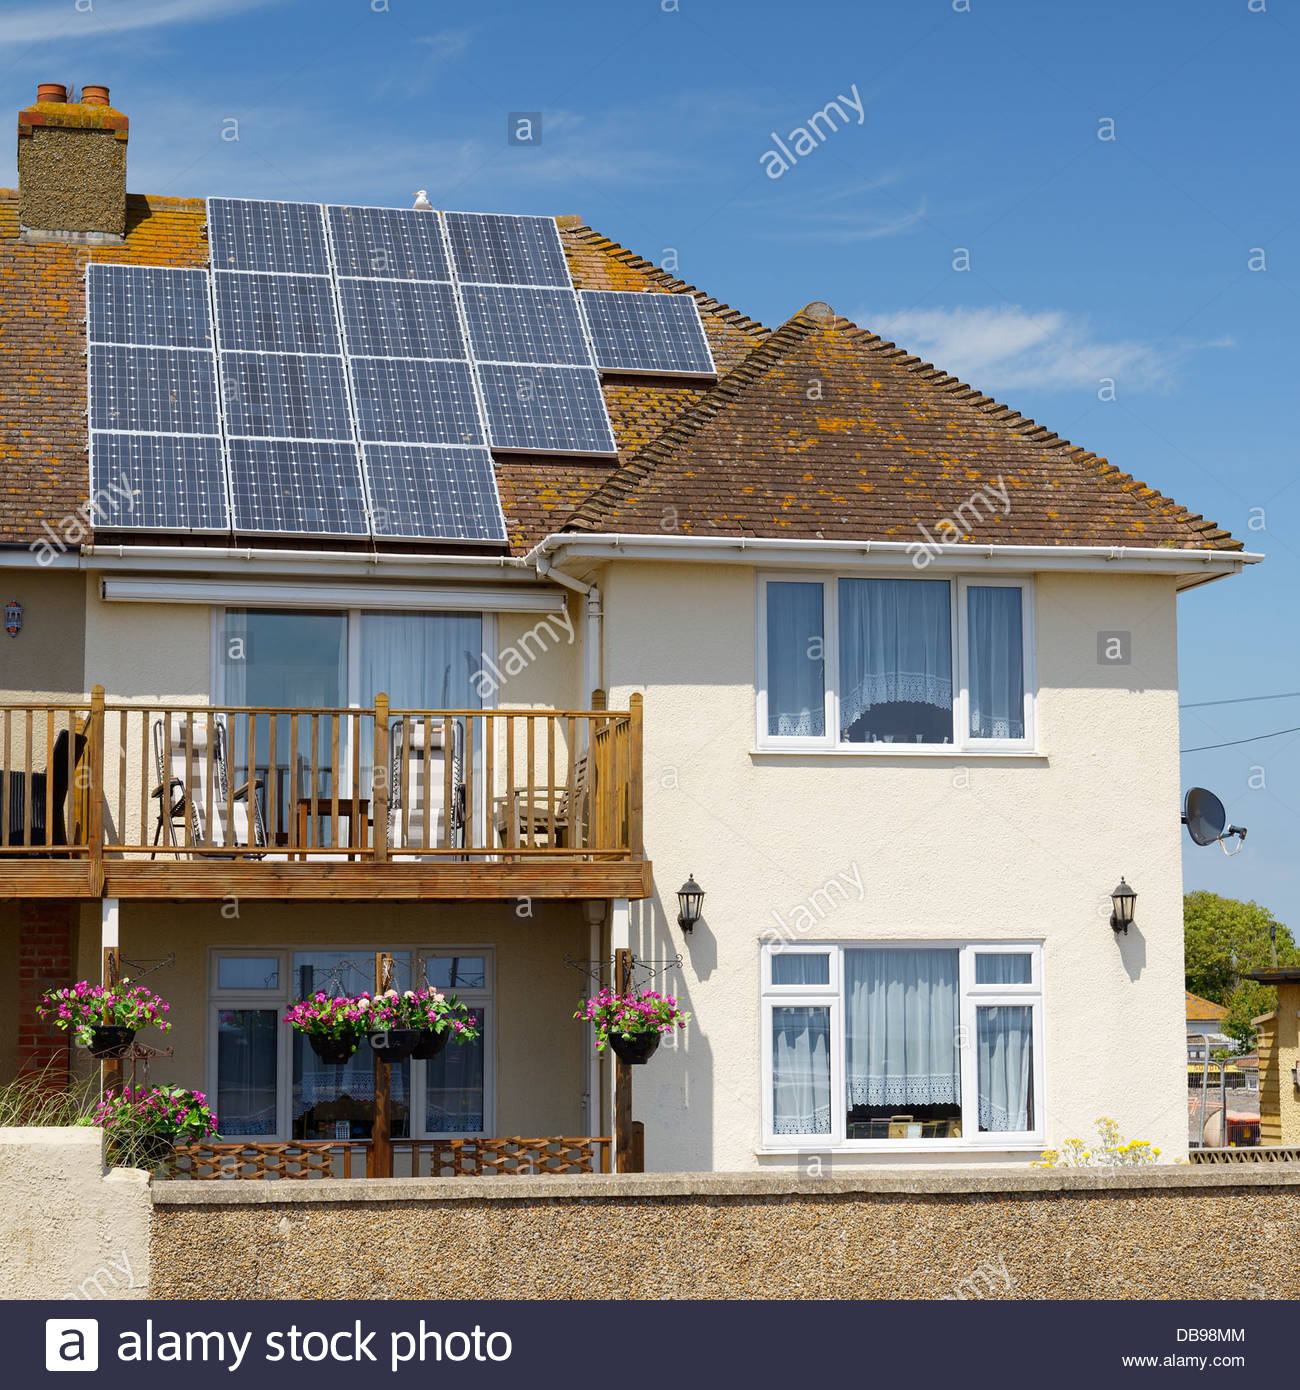 Solar panels on house roof, Seaton, Devon, England UK - Stock Image